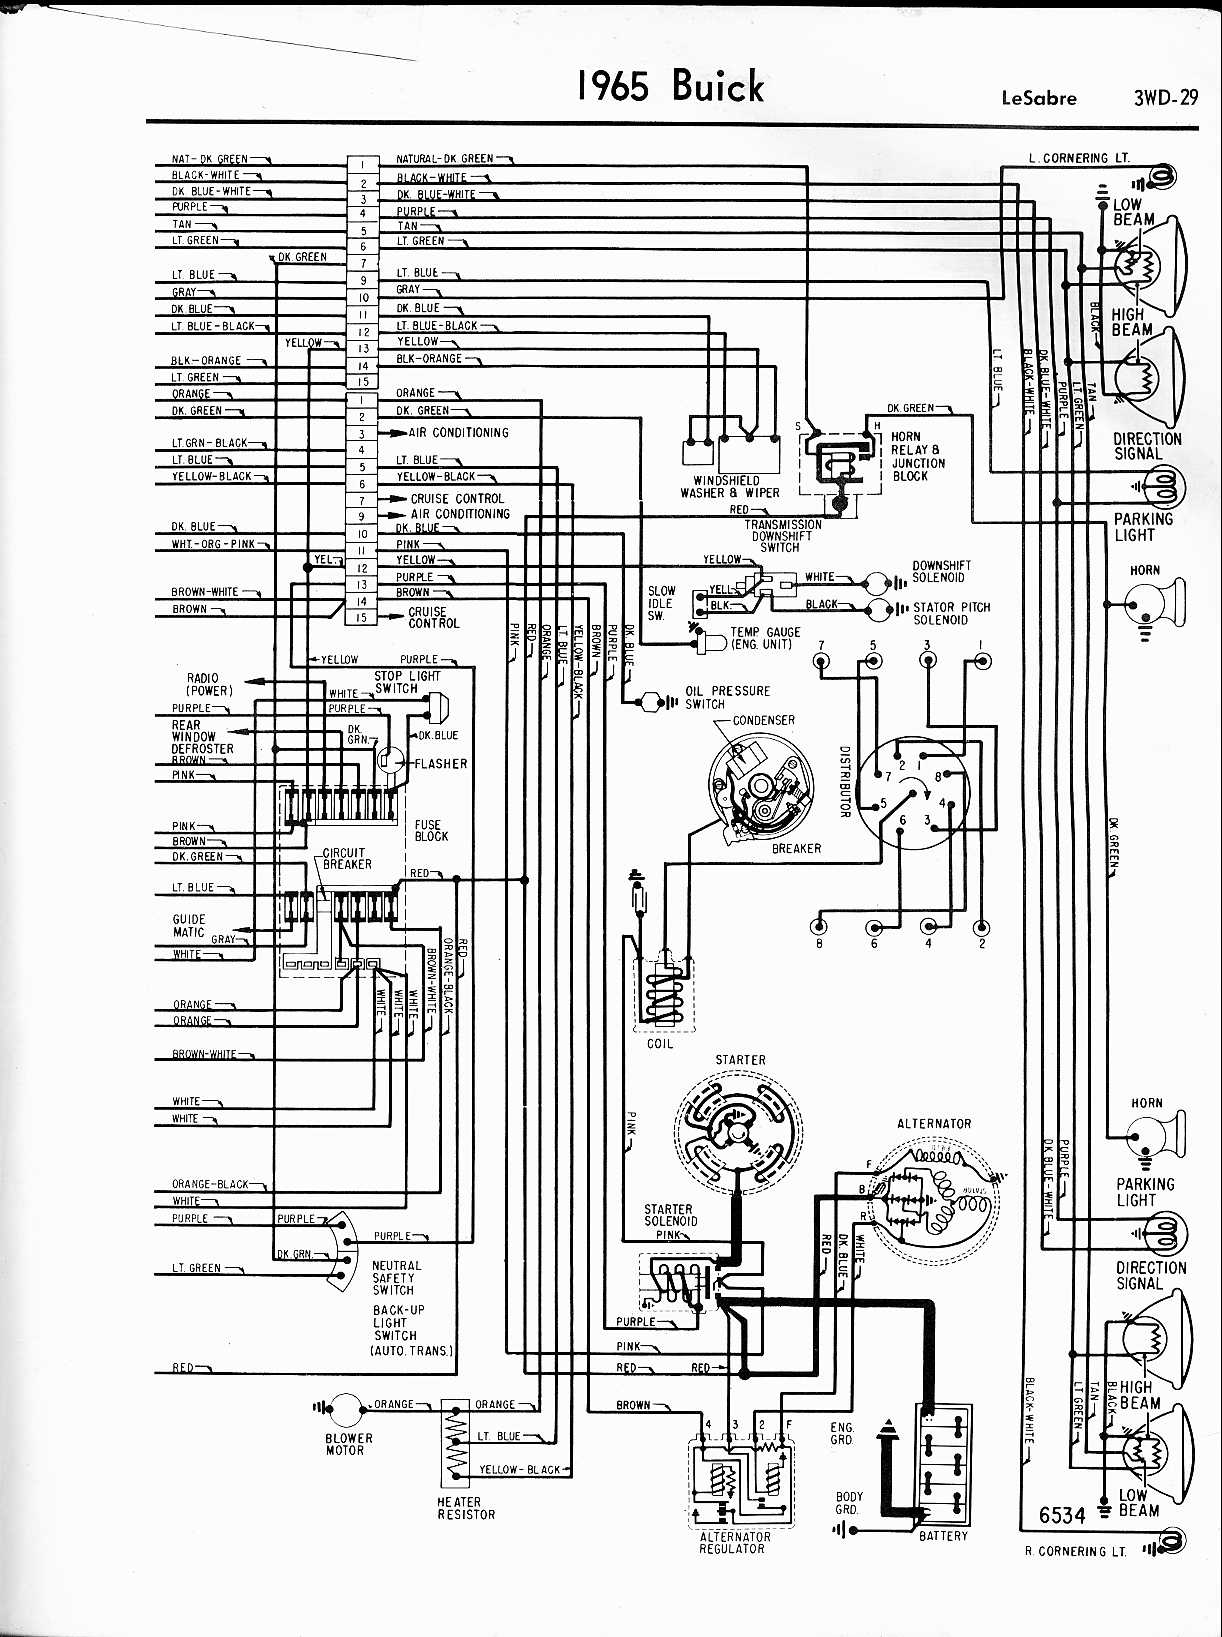 ignition wiring diagram 1995 corvette online wiring diagram corvette wiring diagram besides buick lesabre radio wiring diagramdiagram on 1965 gm stereo also buick stereo